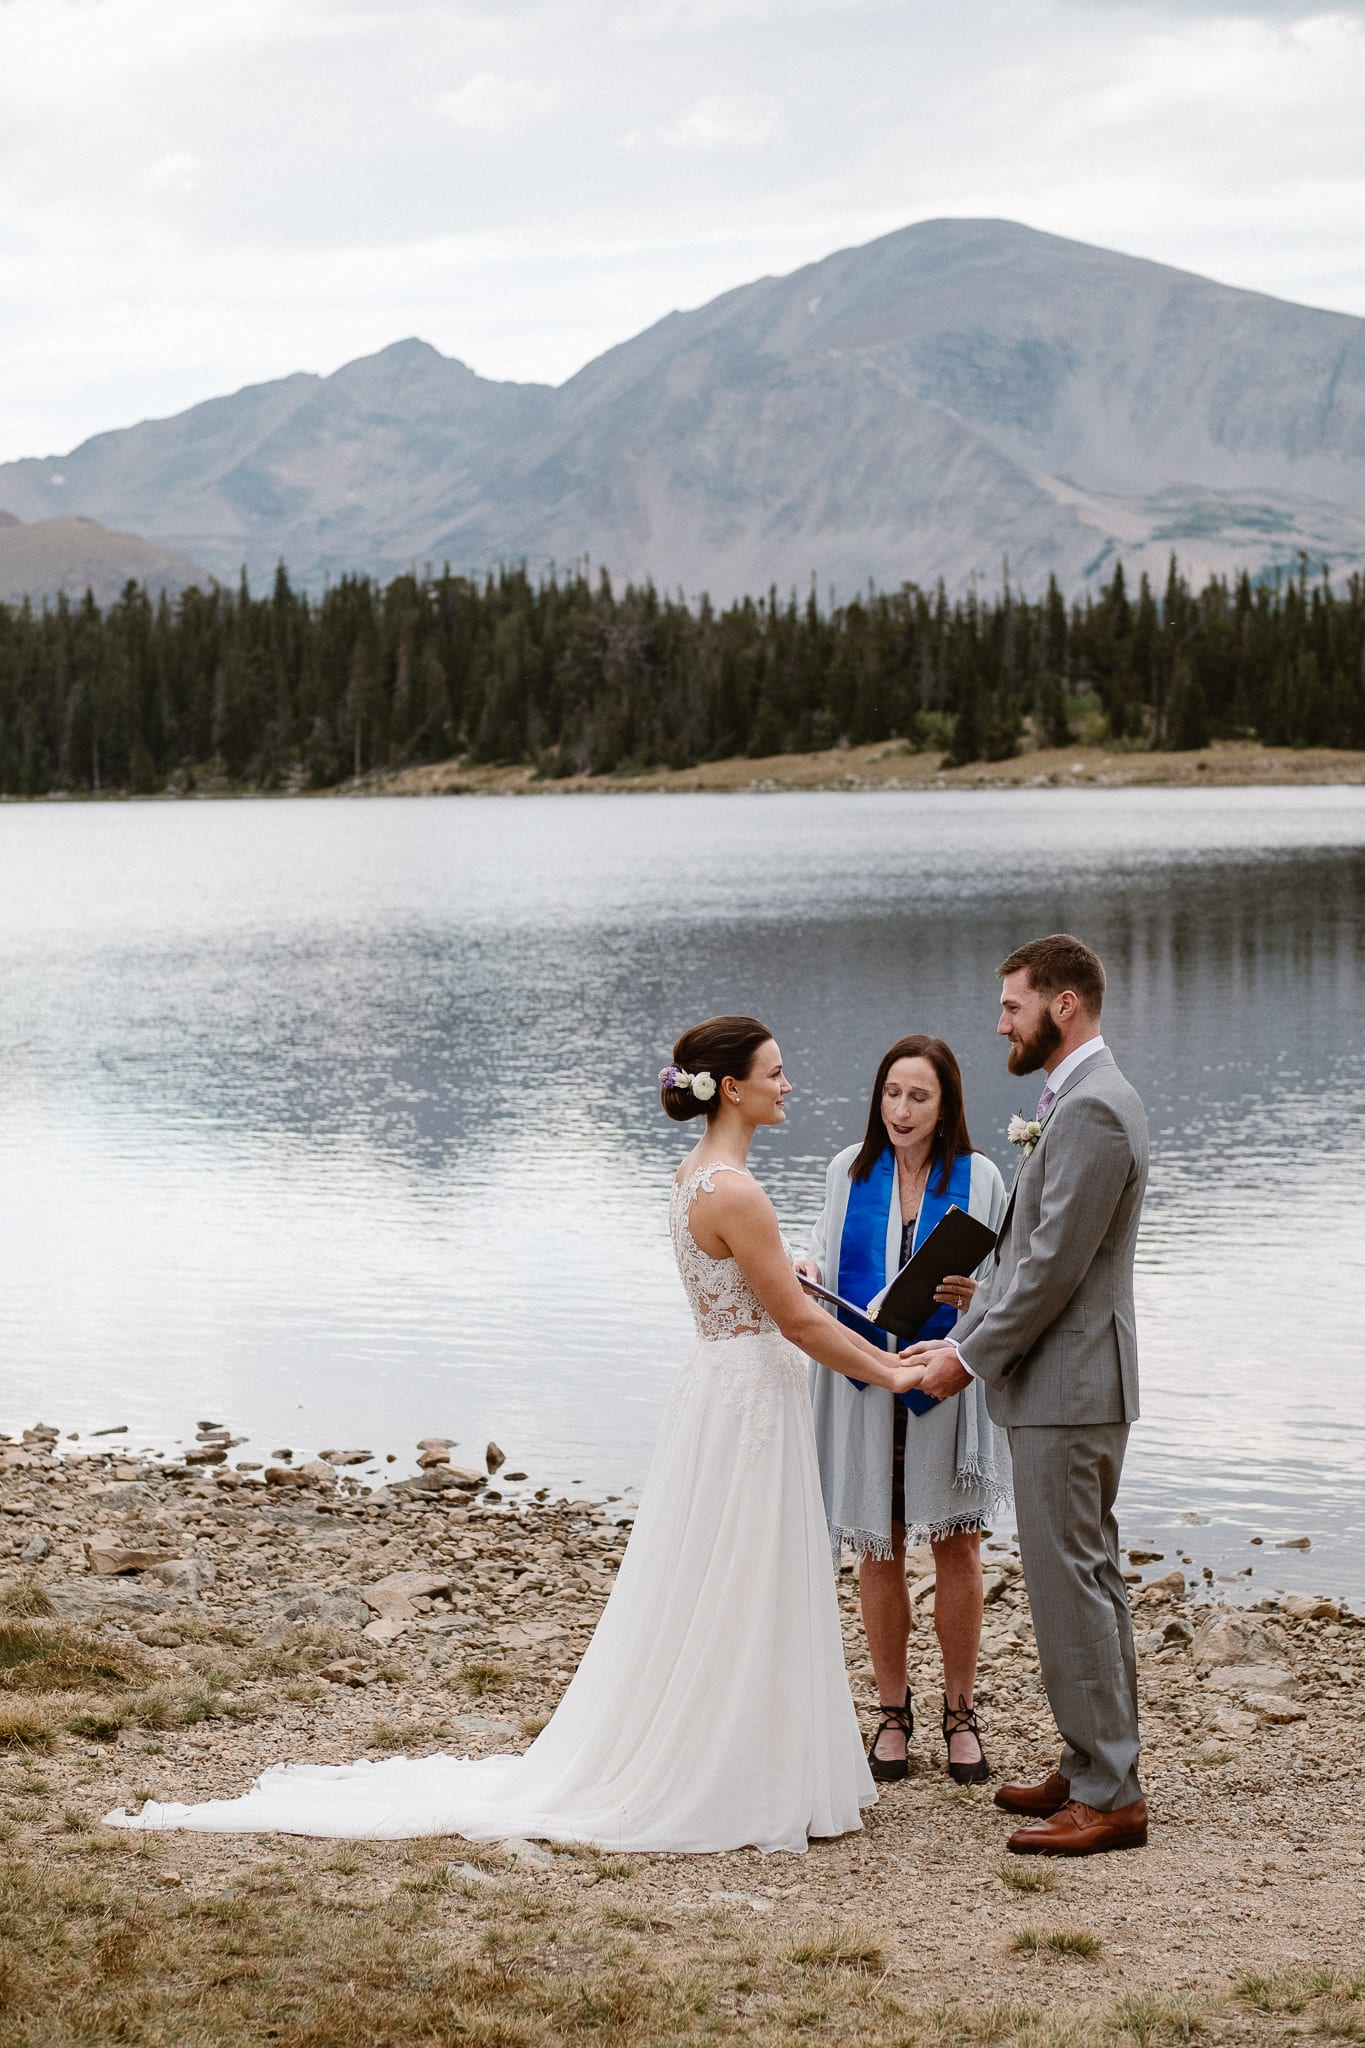 Colorado mountain elopement photographer, alpine lake adventure wedding, Boulder wedding photographer, outdoor ceremony